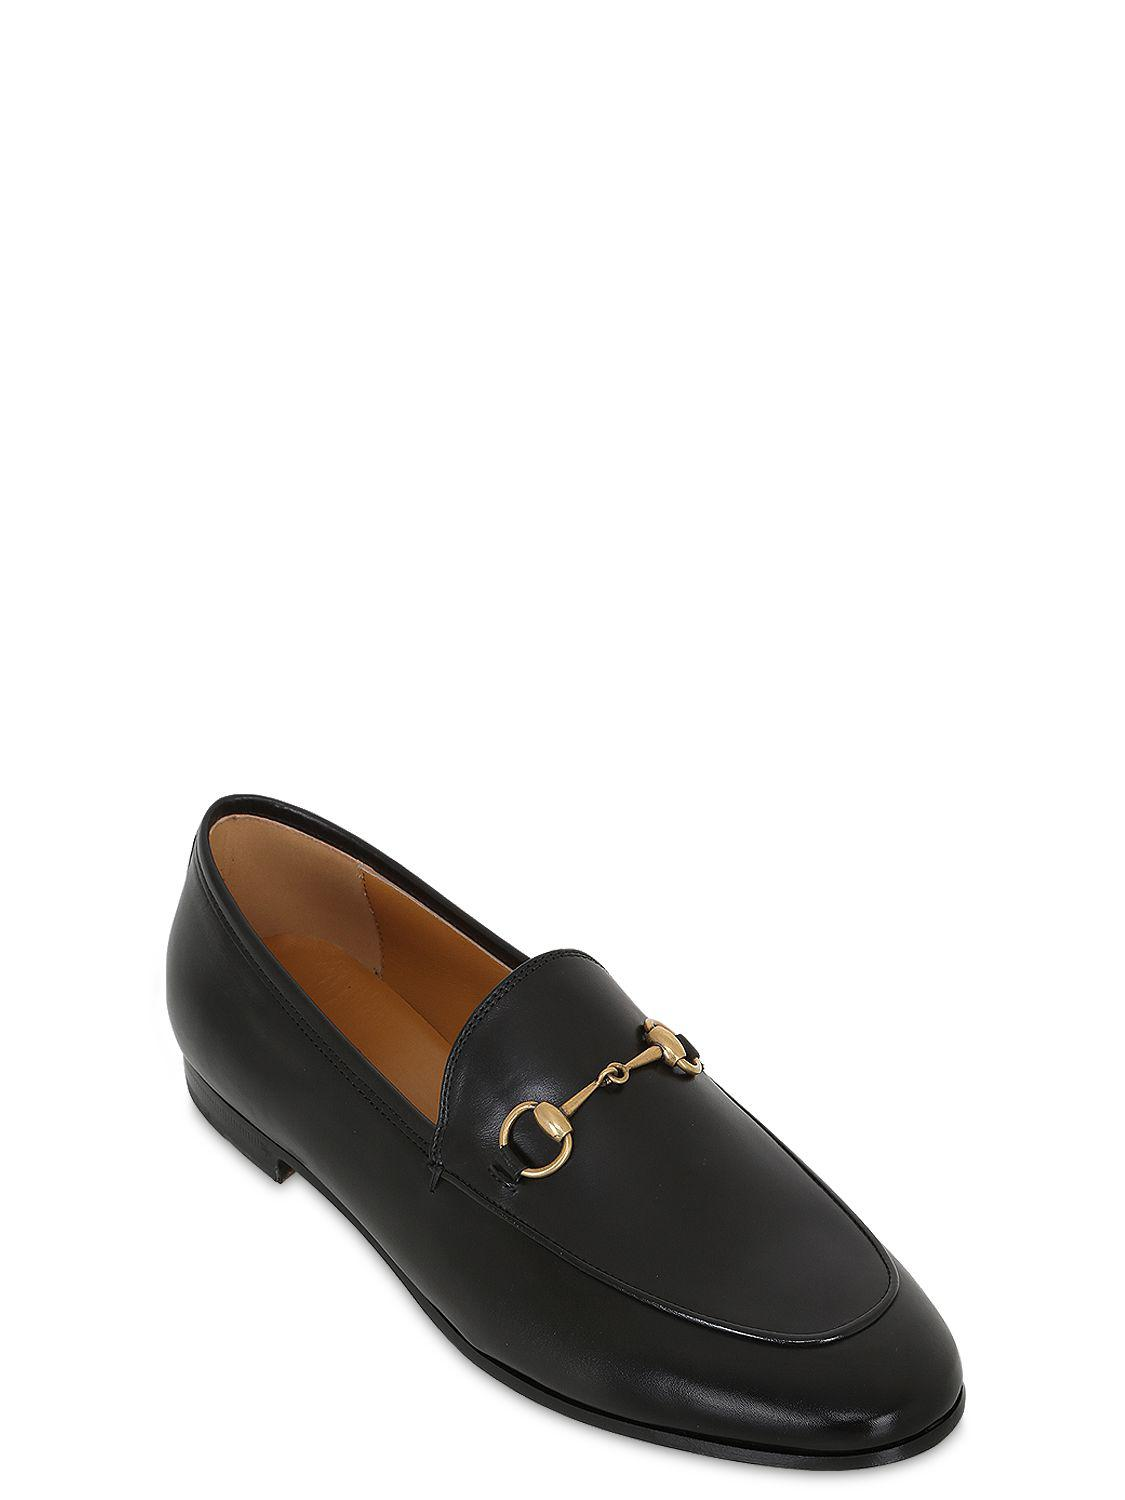 99ea6e13f71 Lyst - Gucci 10mm Jordaan Leather Loafer in Black